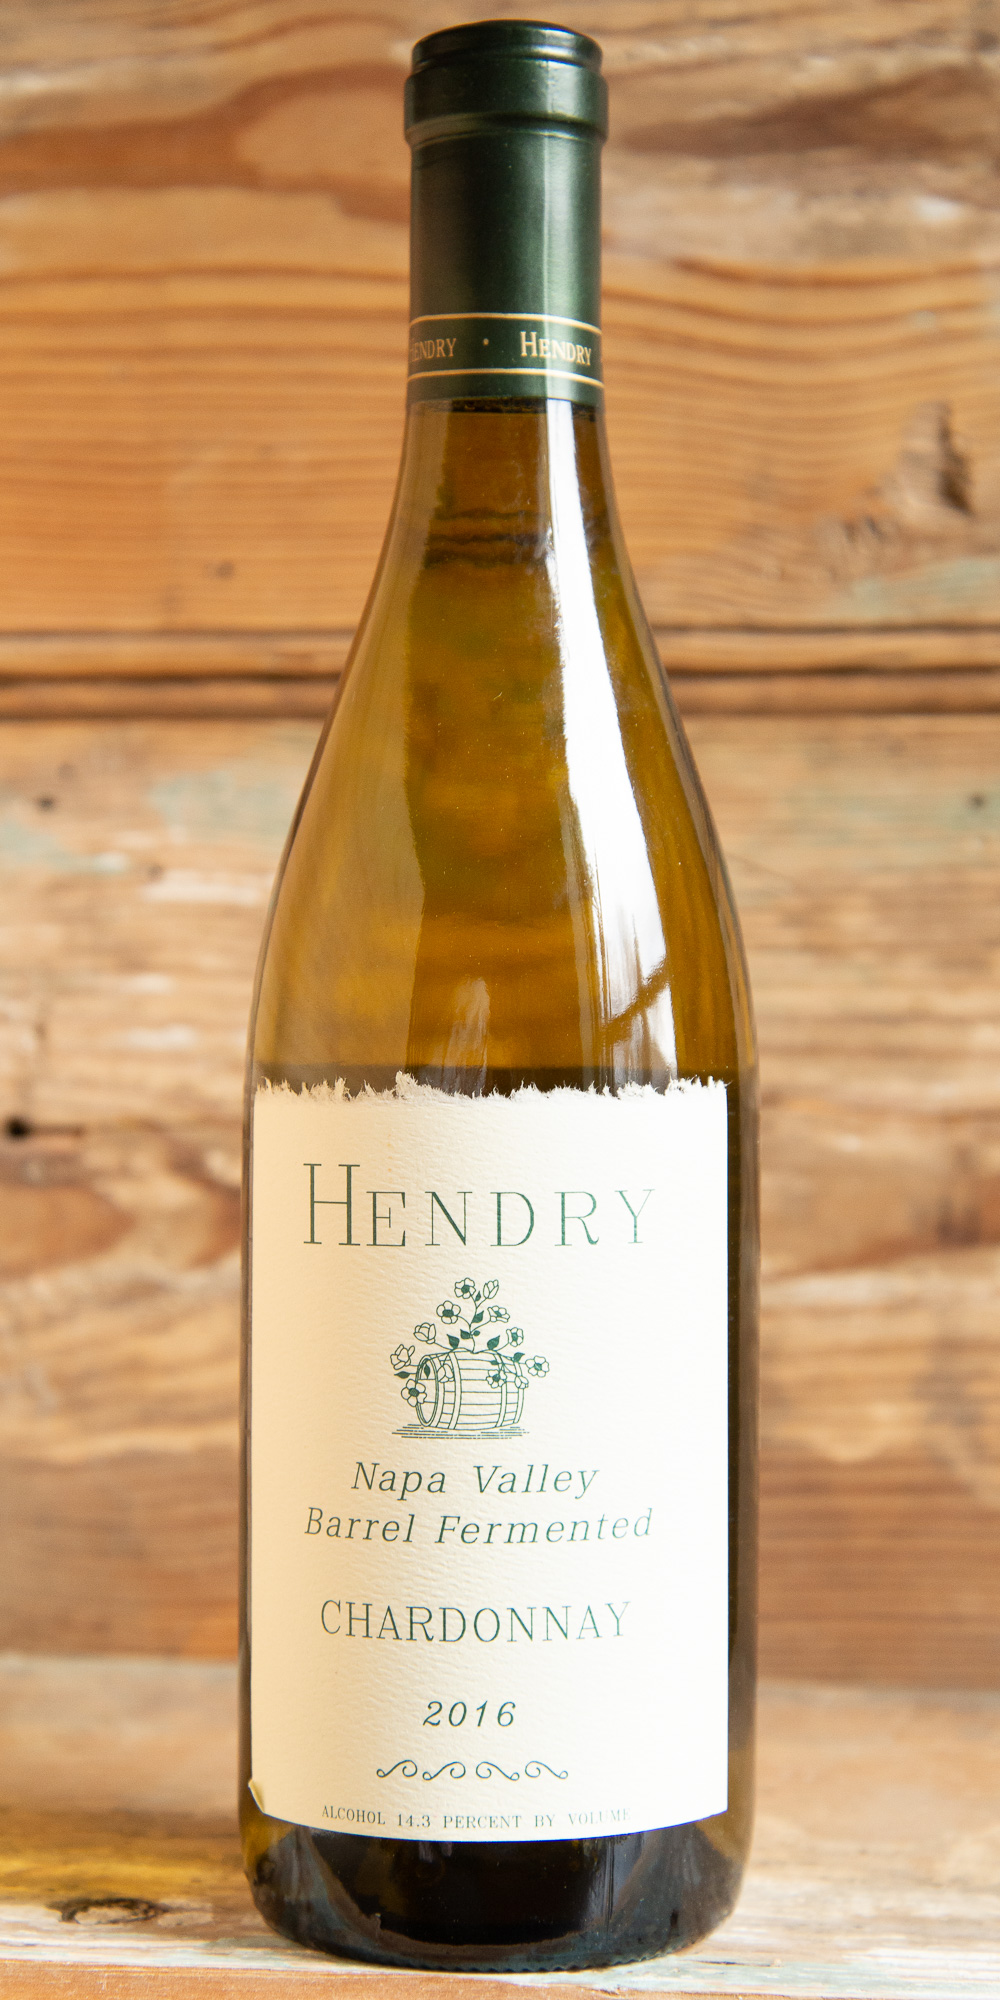 Hendry Napa Valley Barrel Fermented Chardonnay 2016 - Origin: CaliforniaRetail: $39.95 | Sale: $35.95The Hendry Vineyard is located on benchlands just west of the town of Napa. The Chardonnay vines grow on thin, stony soils between 200 and 300 feet above sea level. Morning fog and afternoon breezes from the San Pablo Bay moderate the climate, giving long, warm summer days and cooler nights.This barrel-fermented Chardonnay is whole-cluster pressed and aged in French oak barrels for 11 months. It's a beautiful golden yellow color in the glass with golden apple and spice aromas. The palate is soft, medium-weight, with layers of tangy fruit, spicy oak, and apple peel on the finish. An ideal pairing with salmon, Manchego cheese, or white pizzas. This wine's food pairing versatility and acidic brightness make friends for it on both sides of the Chardonnay divide.100% Chardonnay